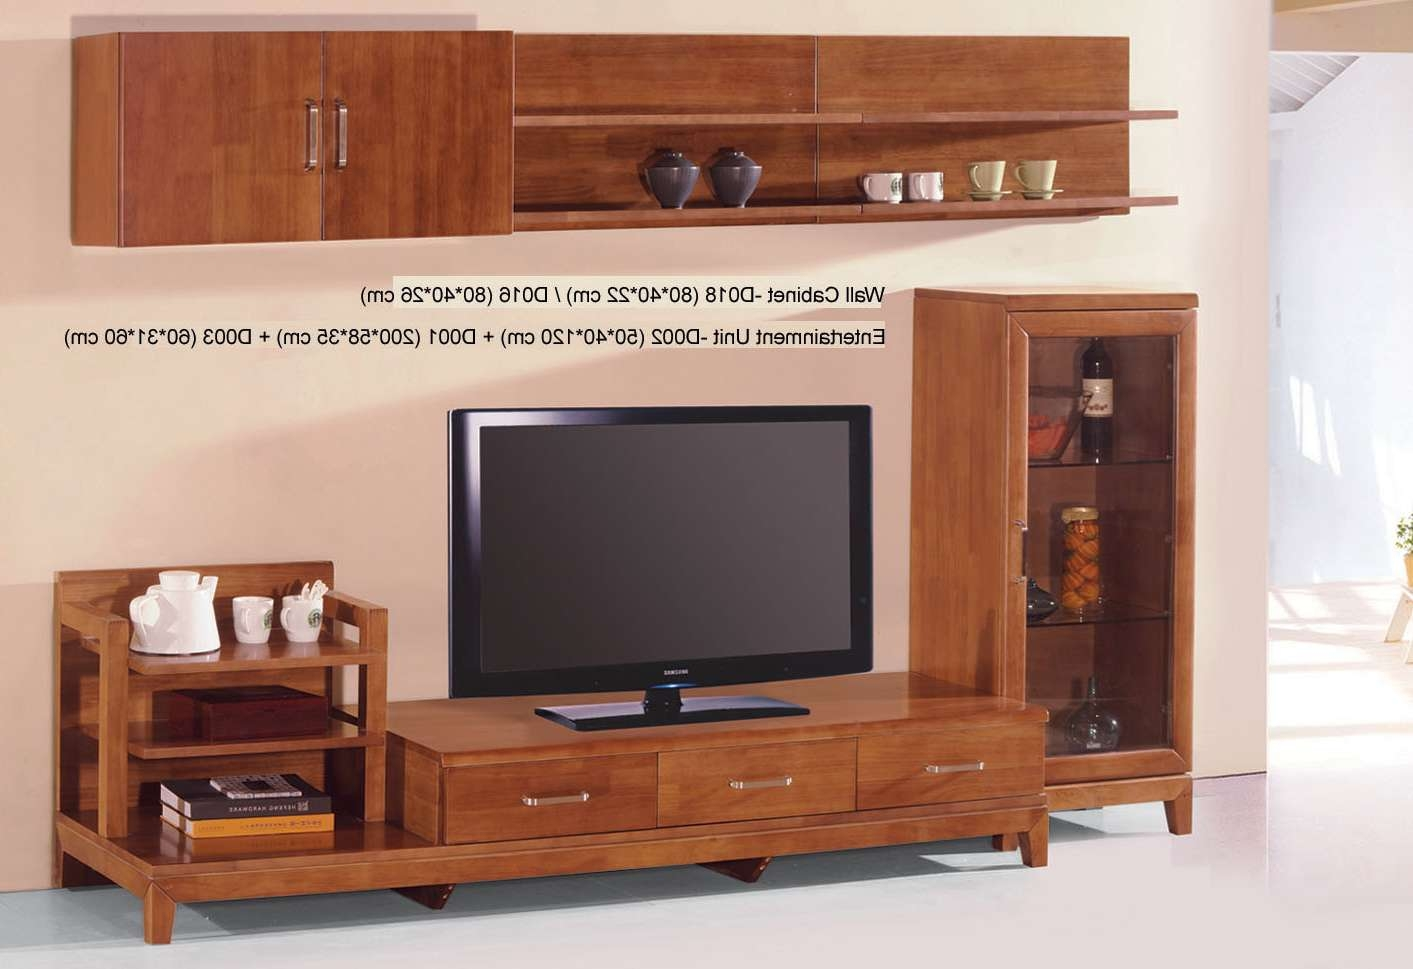 Country Style Tv Stand Unit Idea In Honey Oak Finish With Three With Honey Oak Tv Stands (View 1 of 15)